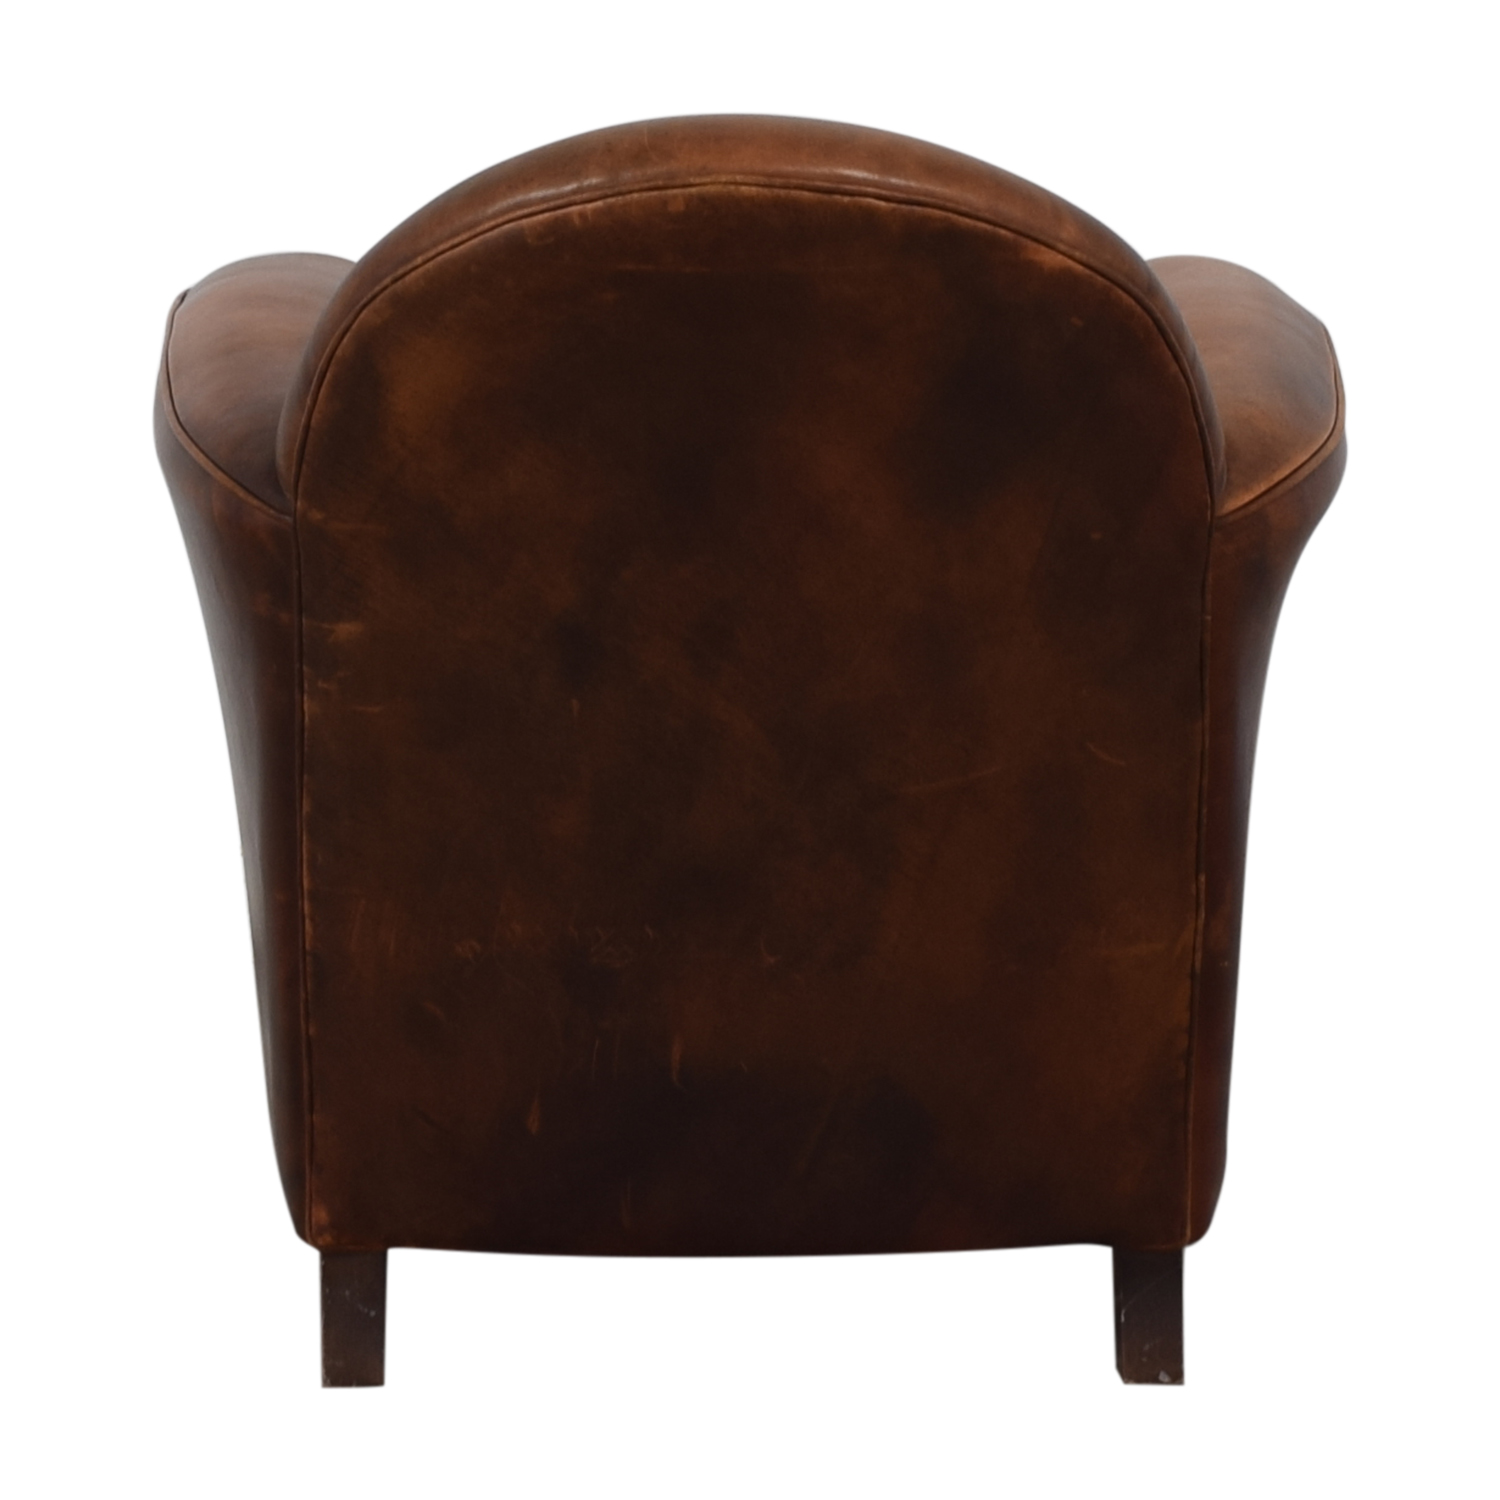 Wood Club Chair 75 Off French Leather Club Chair Chairs